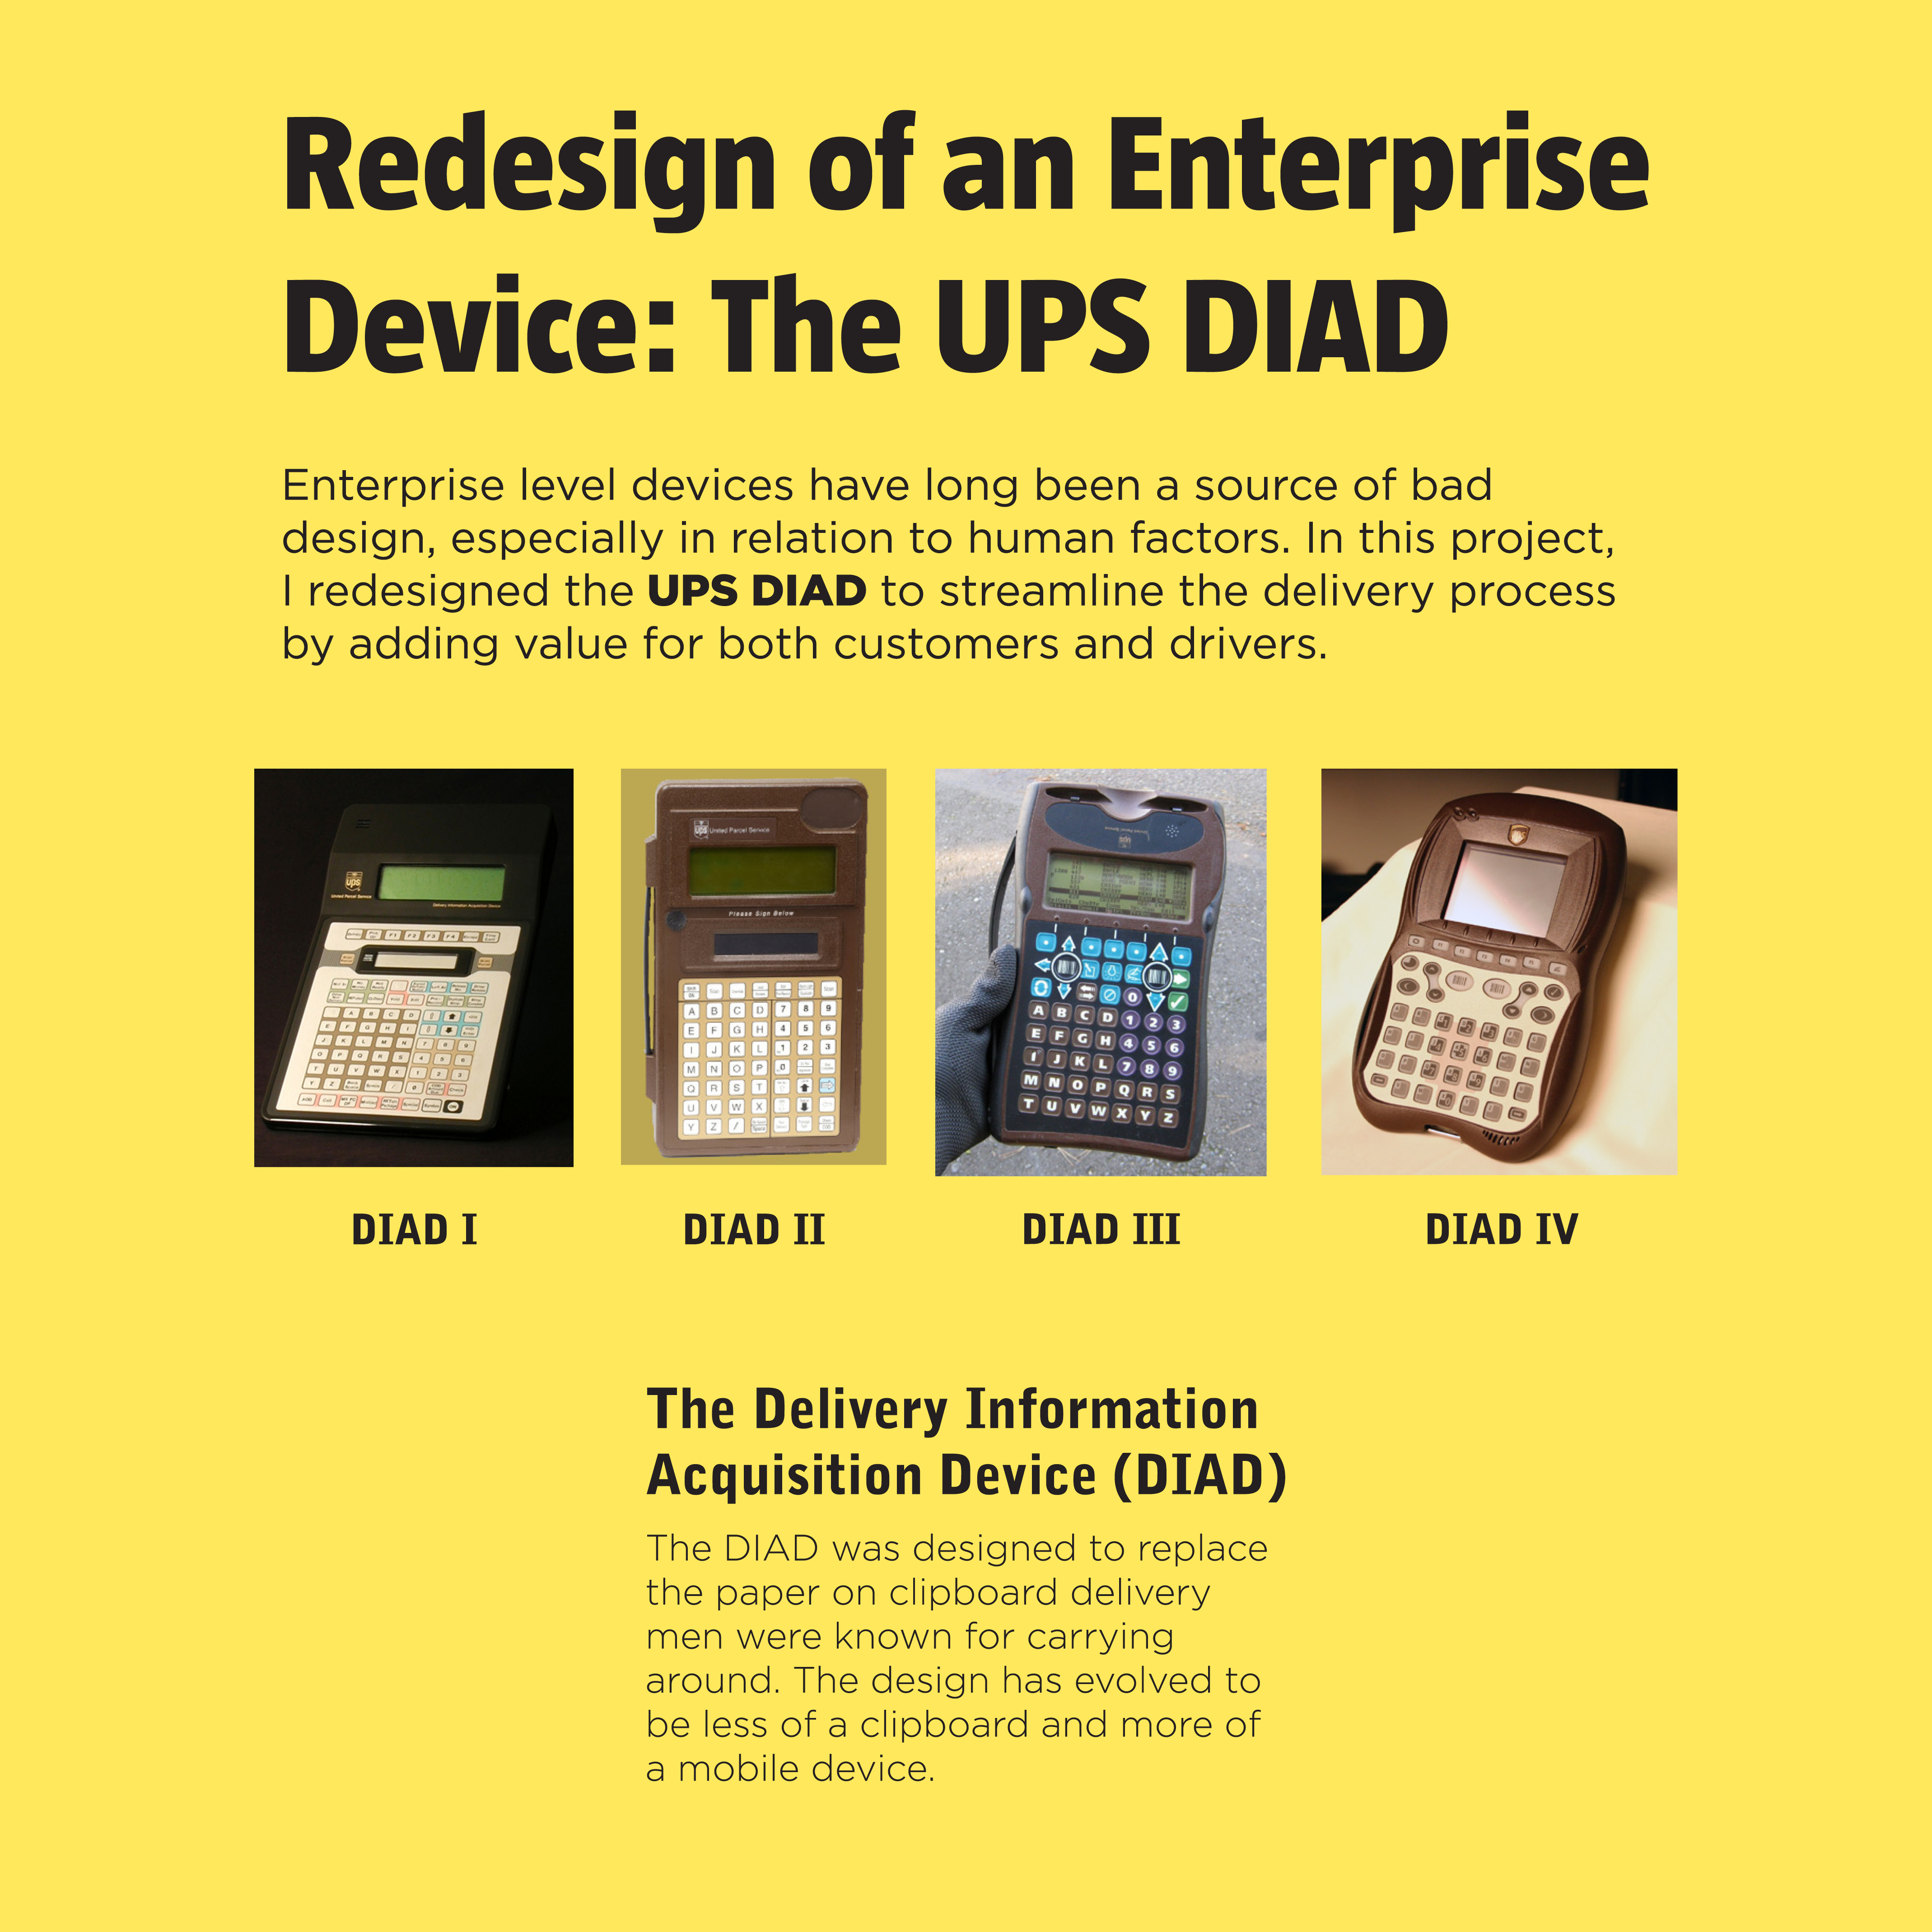 diad delivery information acquisition device essay List the various ways that diad (delivery information acquisition device)  improves customer service diad has improved customer service by.